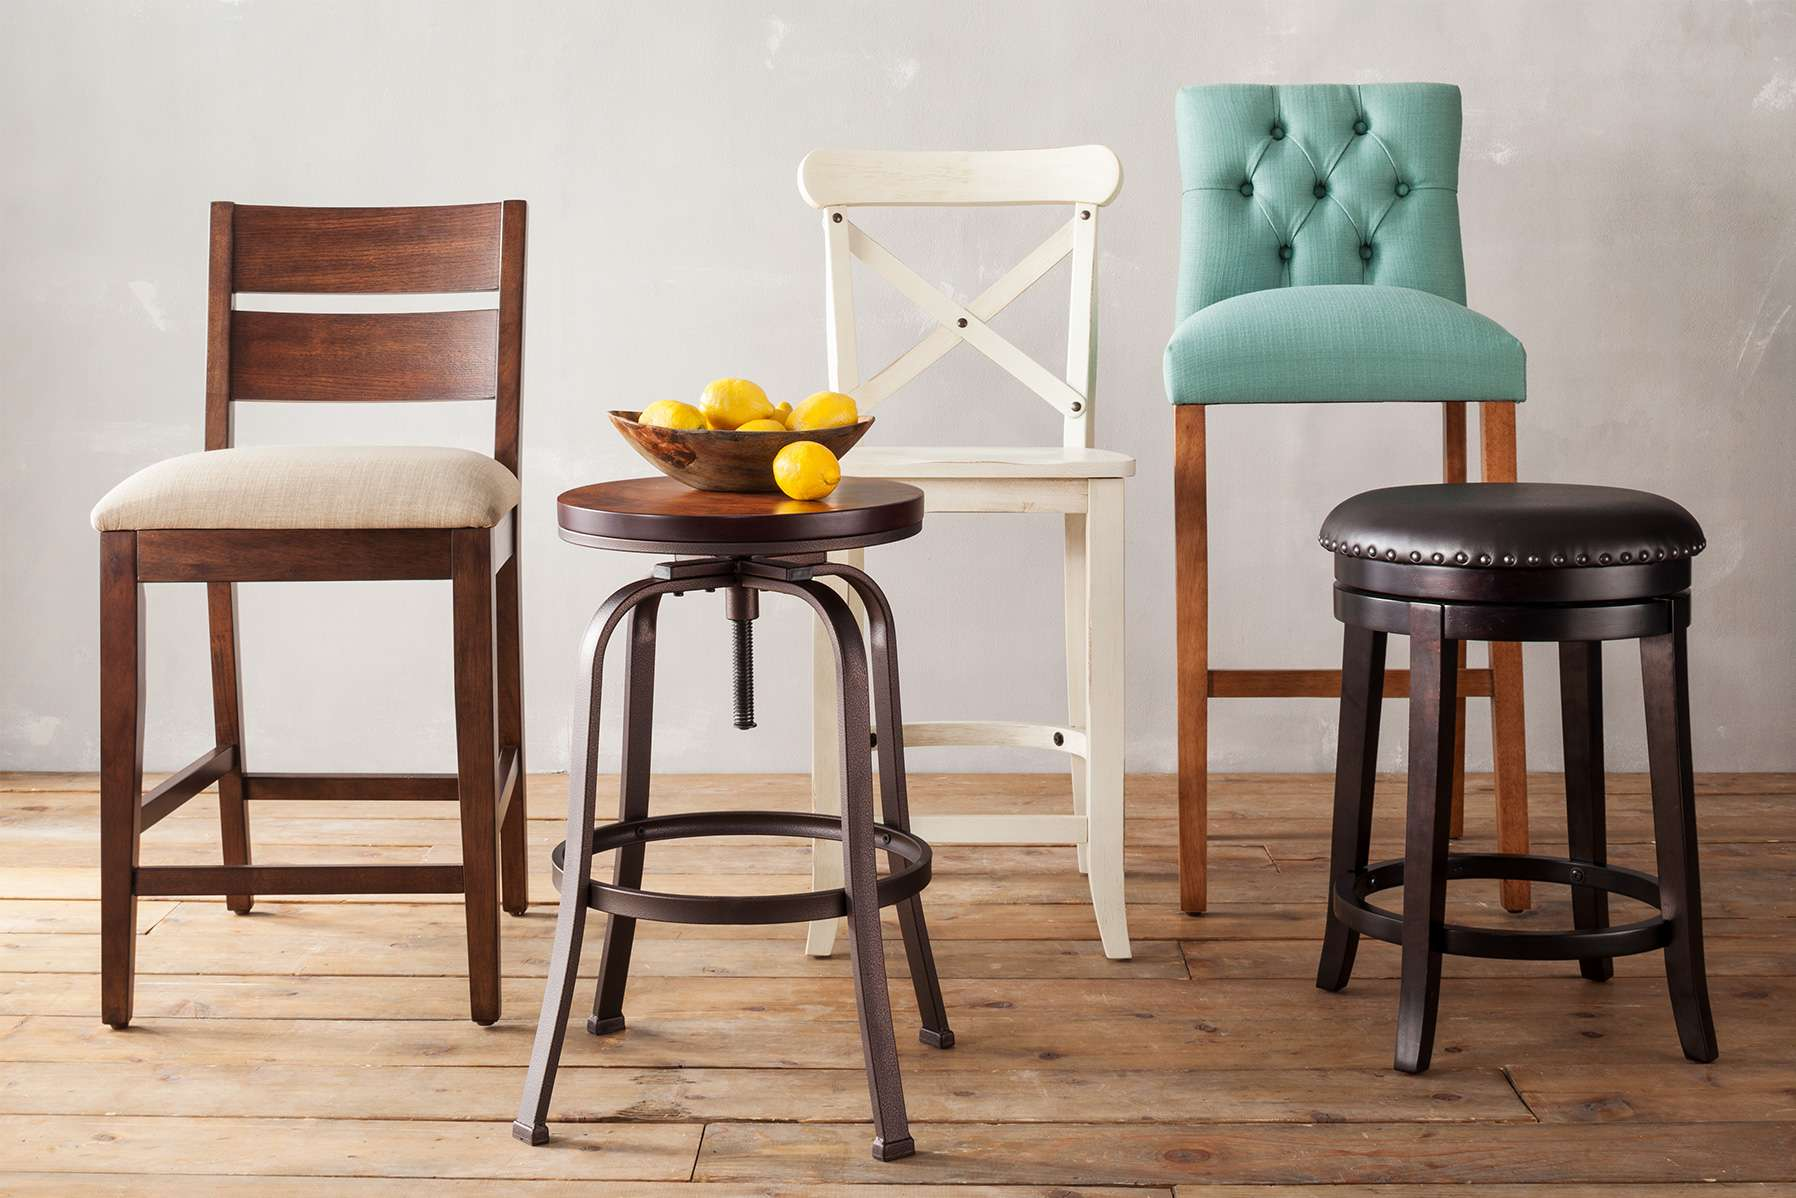 Uncategorized Furniture Kitchen kitchen dining furniture target barstools